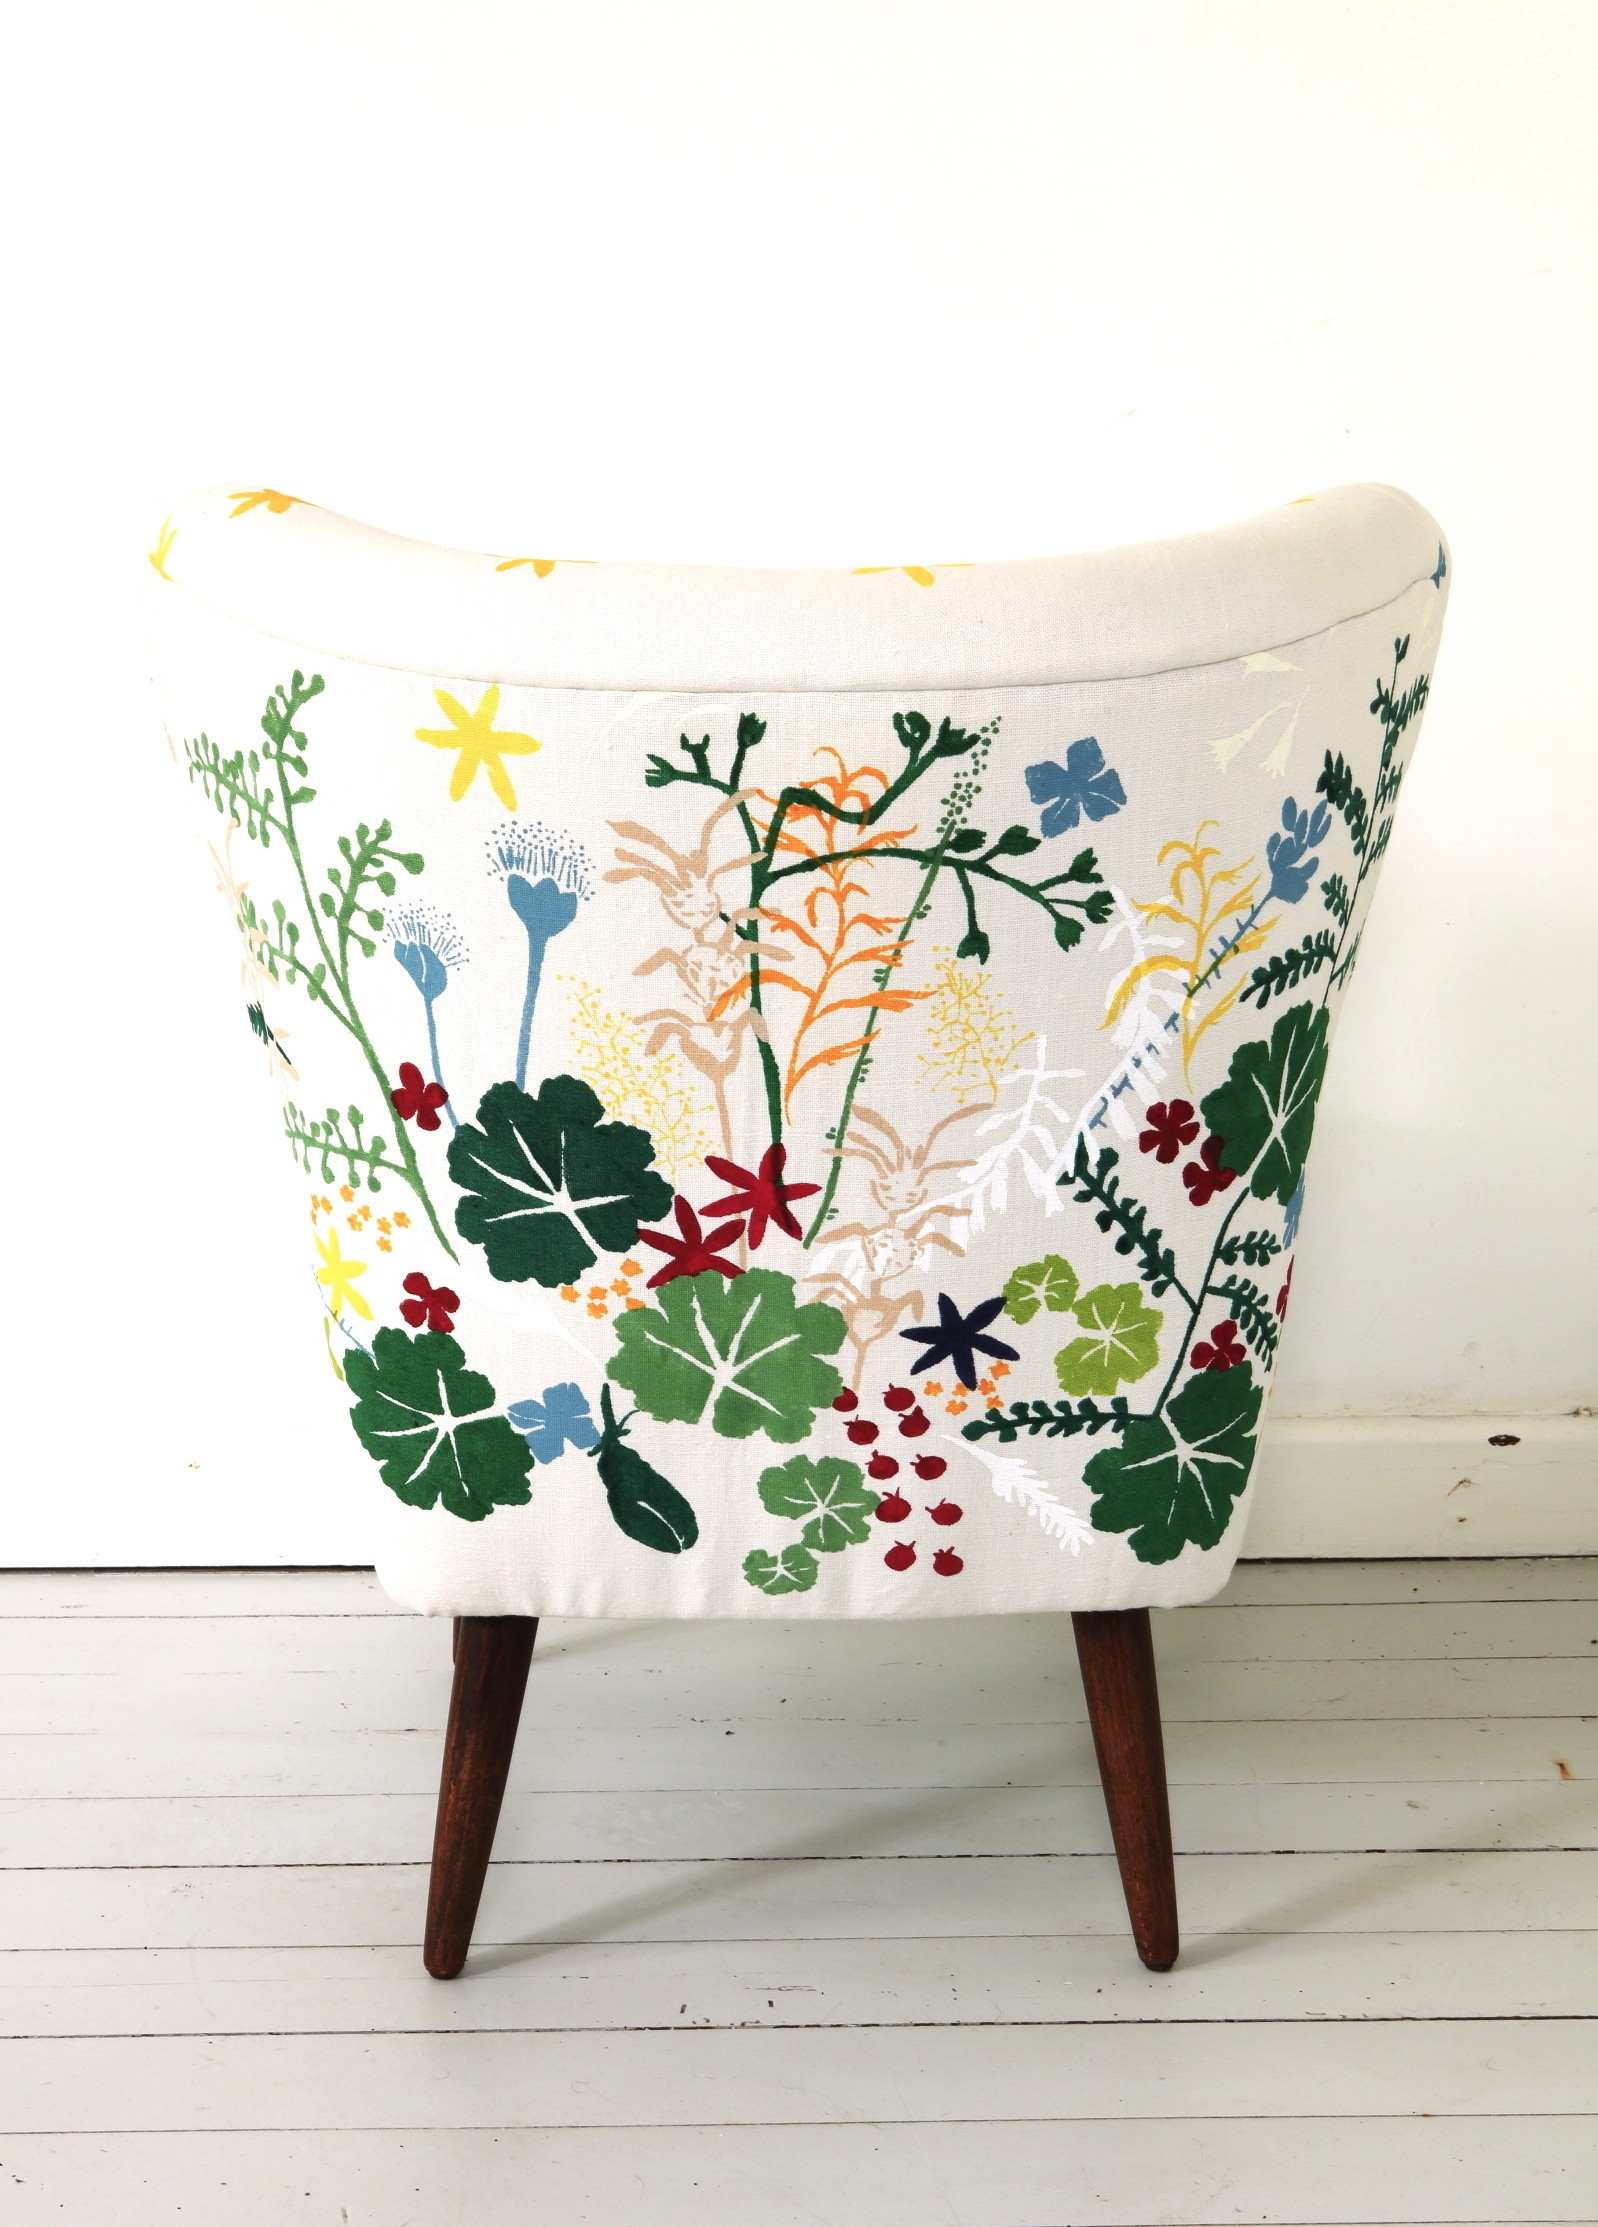 Vintage chair upholstered in hand-stencilled artist's textile Thicket Garden - Seed Bomb, designed by David Bellamy, MOMAT. Photograph Martin Hahn.